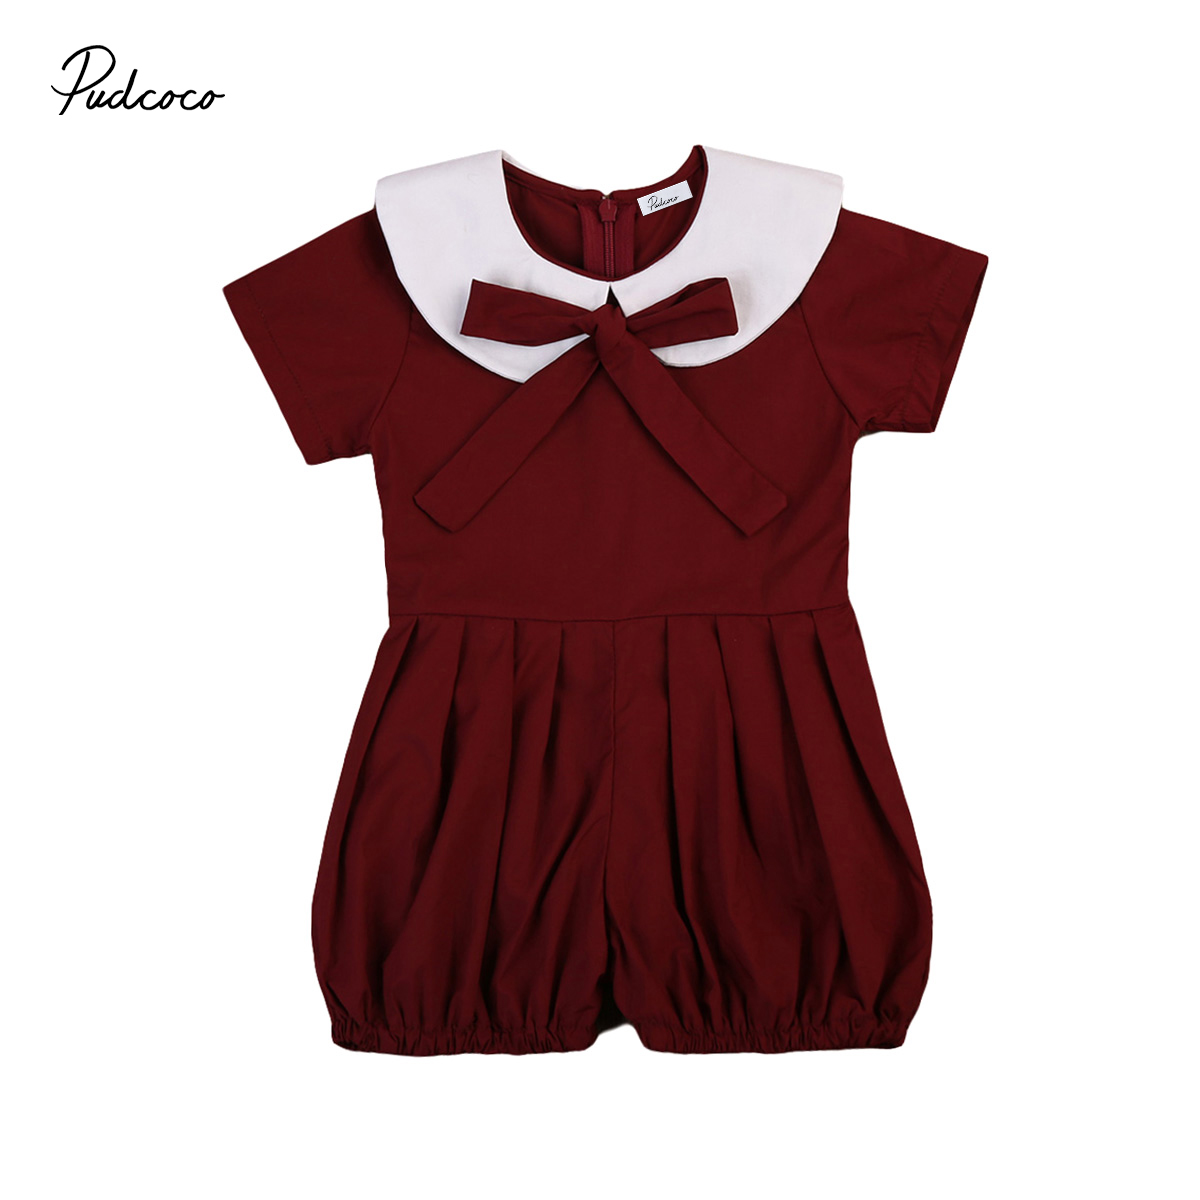 2017 New Brand Summer Newborn Toddler Infant Kids Baby Girl Outfit Clothes Ruffled Romper Jumpsuit Short Sleeve Sunsuit 6M-4T 2017 new adorable summer games infant newborn baby boy girl romper jumpsuit outfits clothes clothing